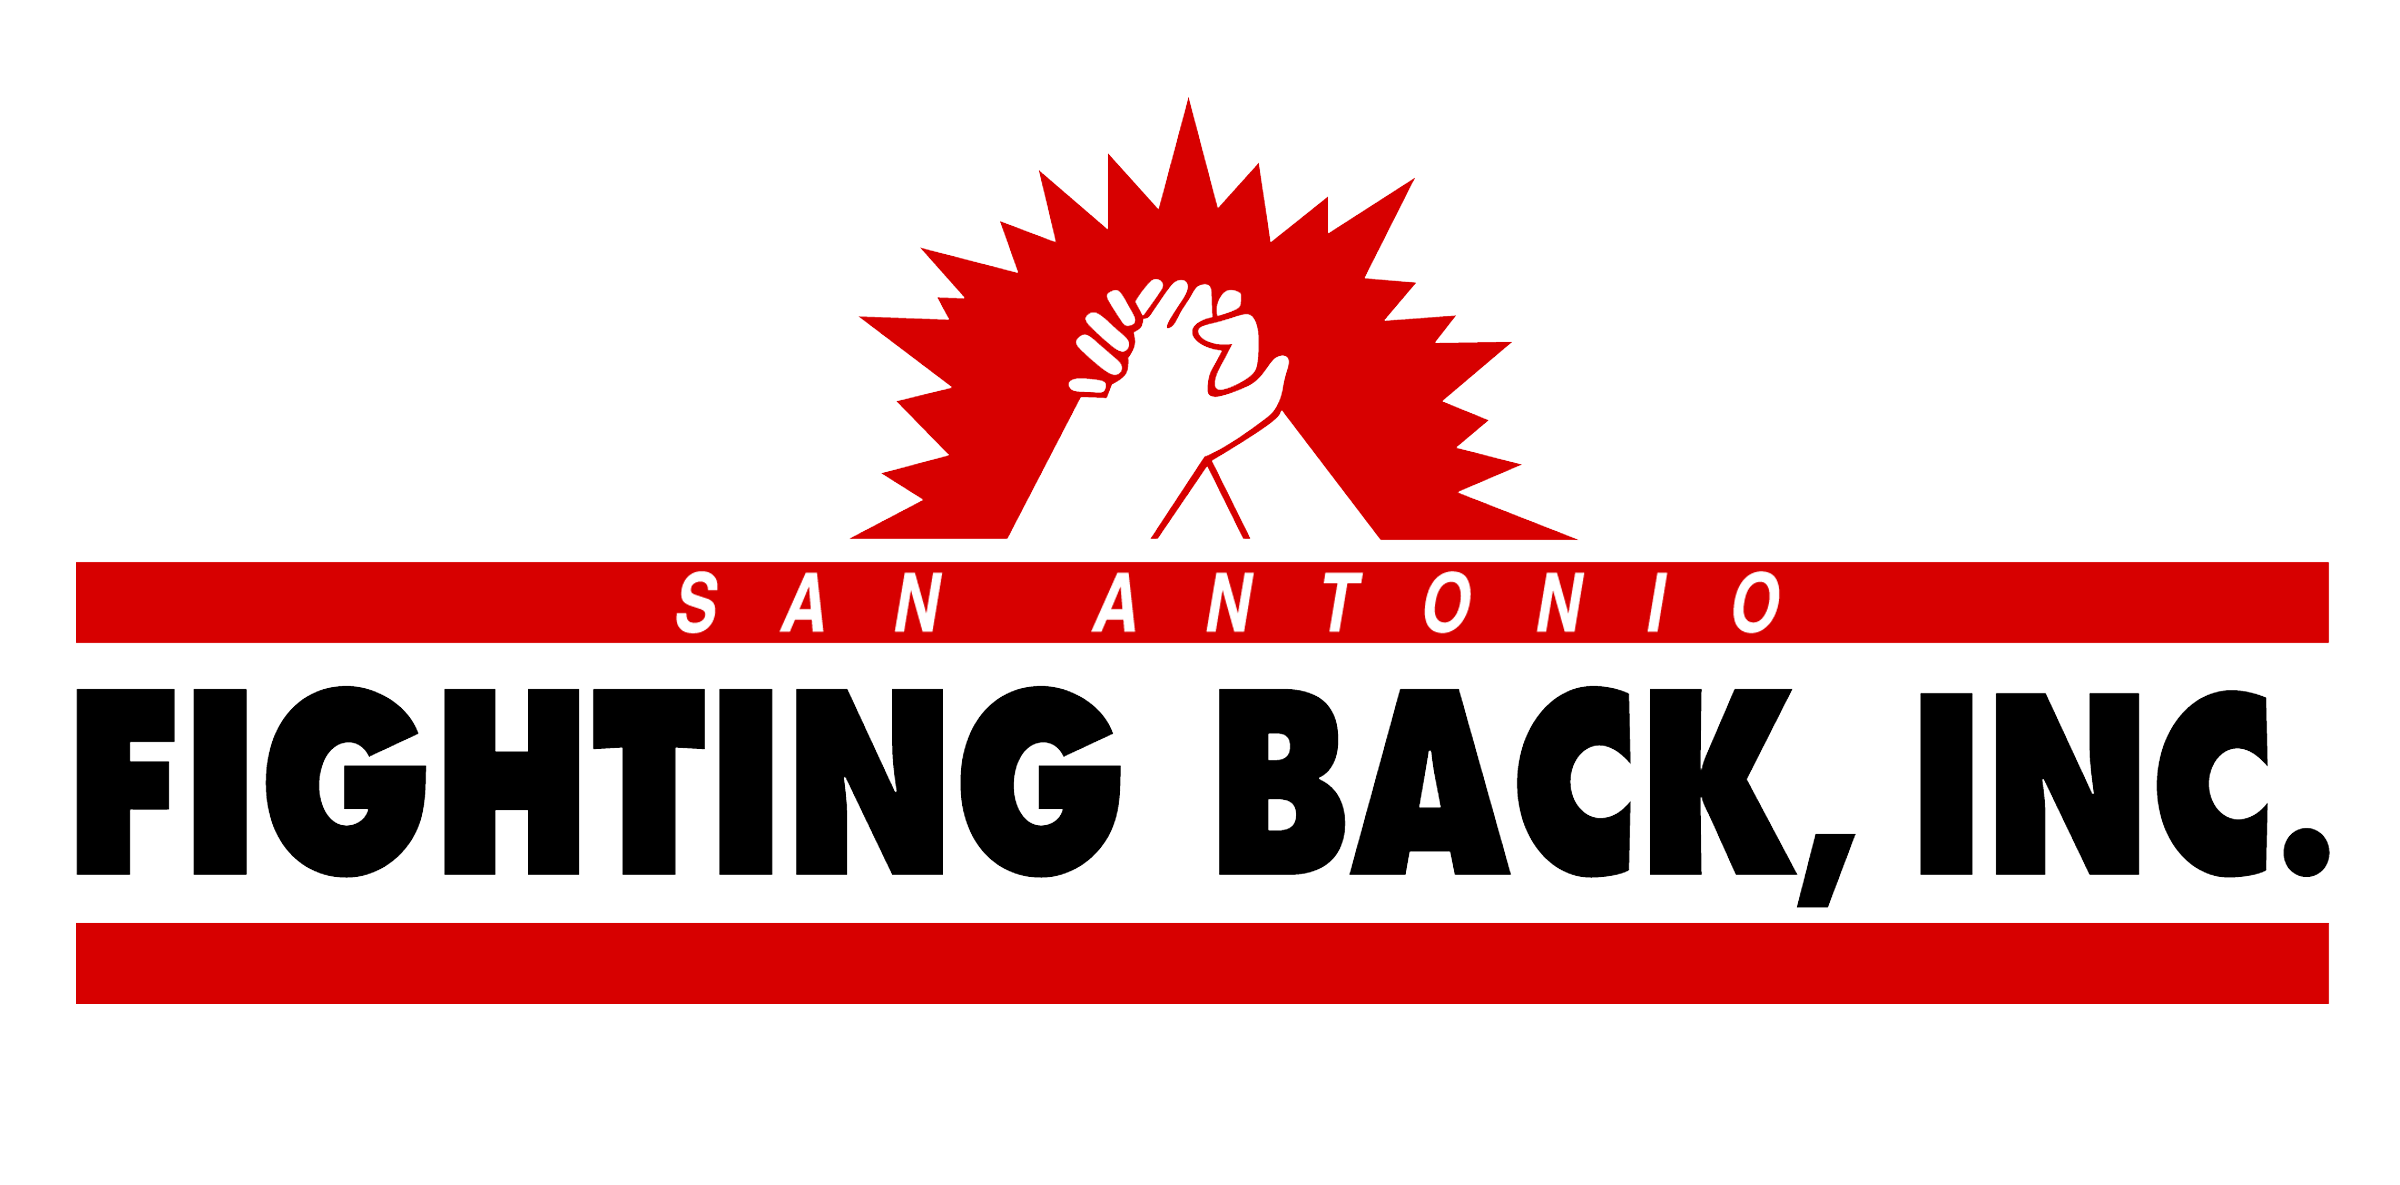 San Antonio Fighting Back